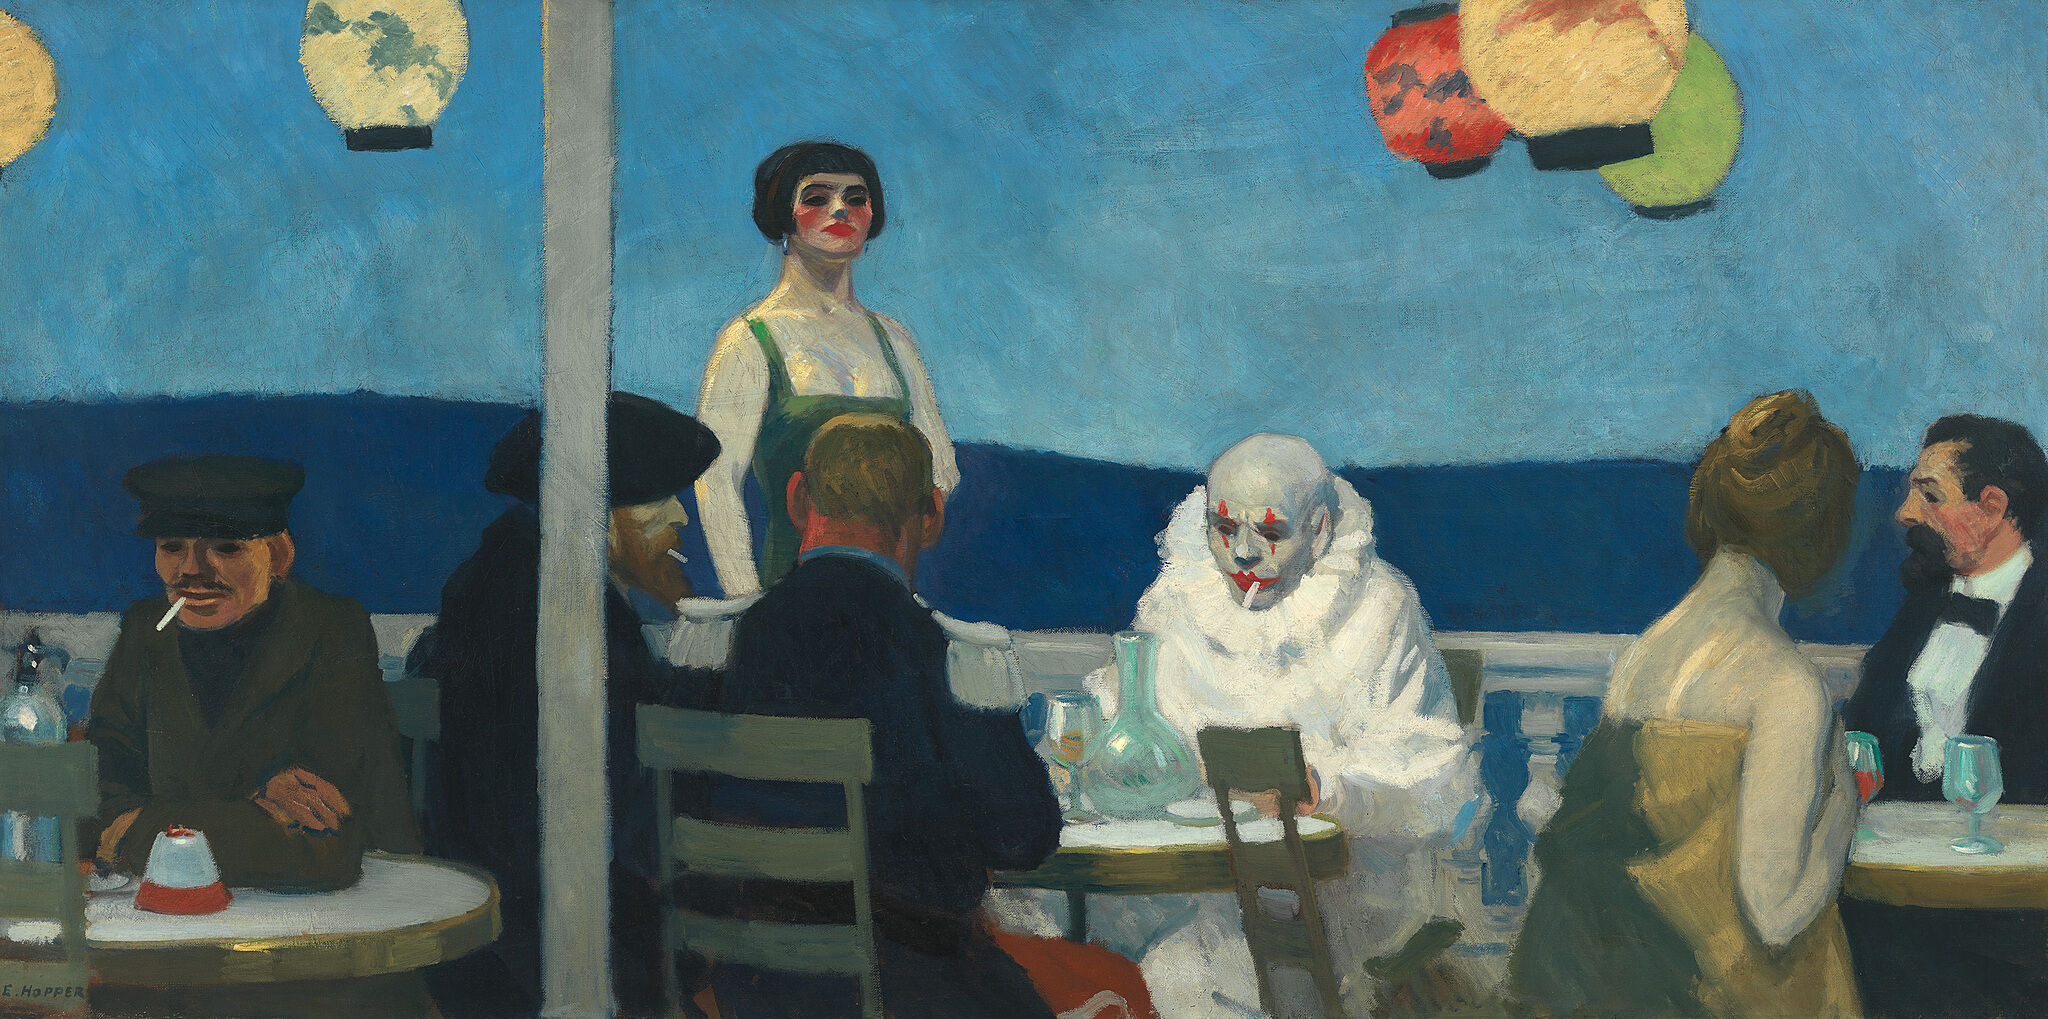 A painting of people sitting at cafe with a mostly blue color palette.